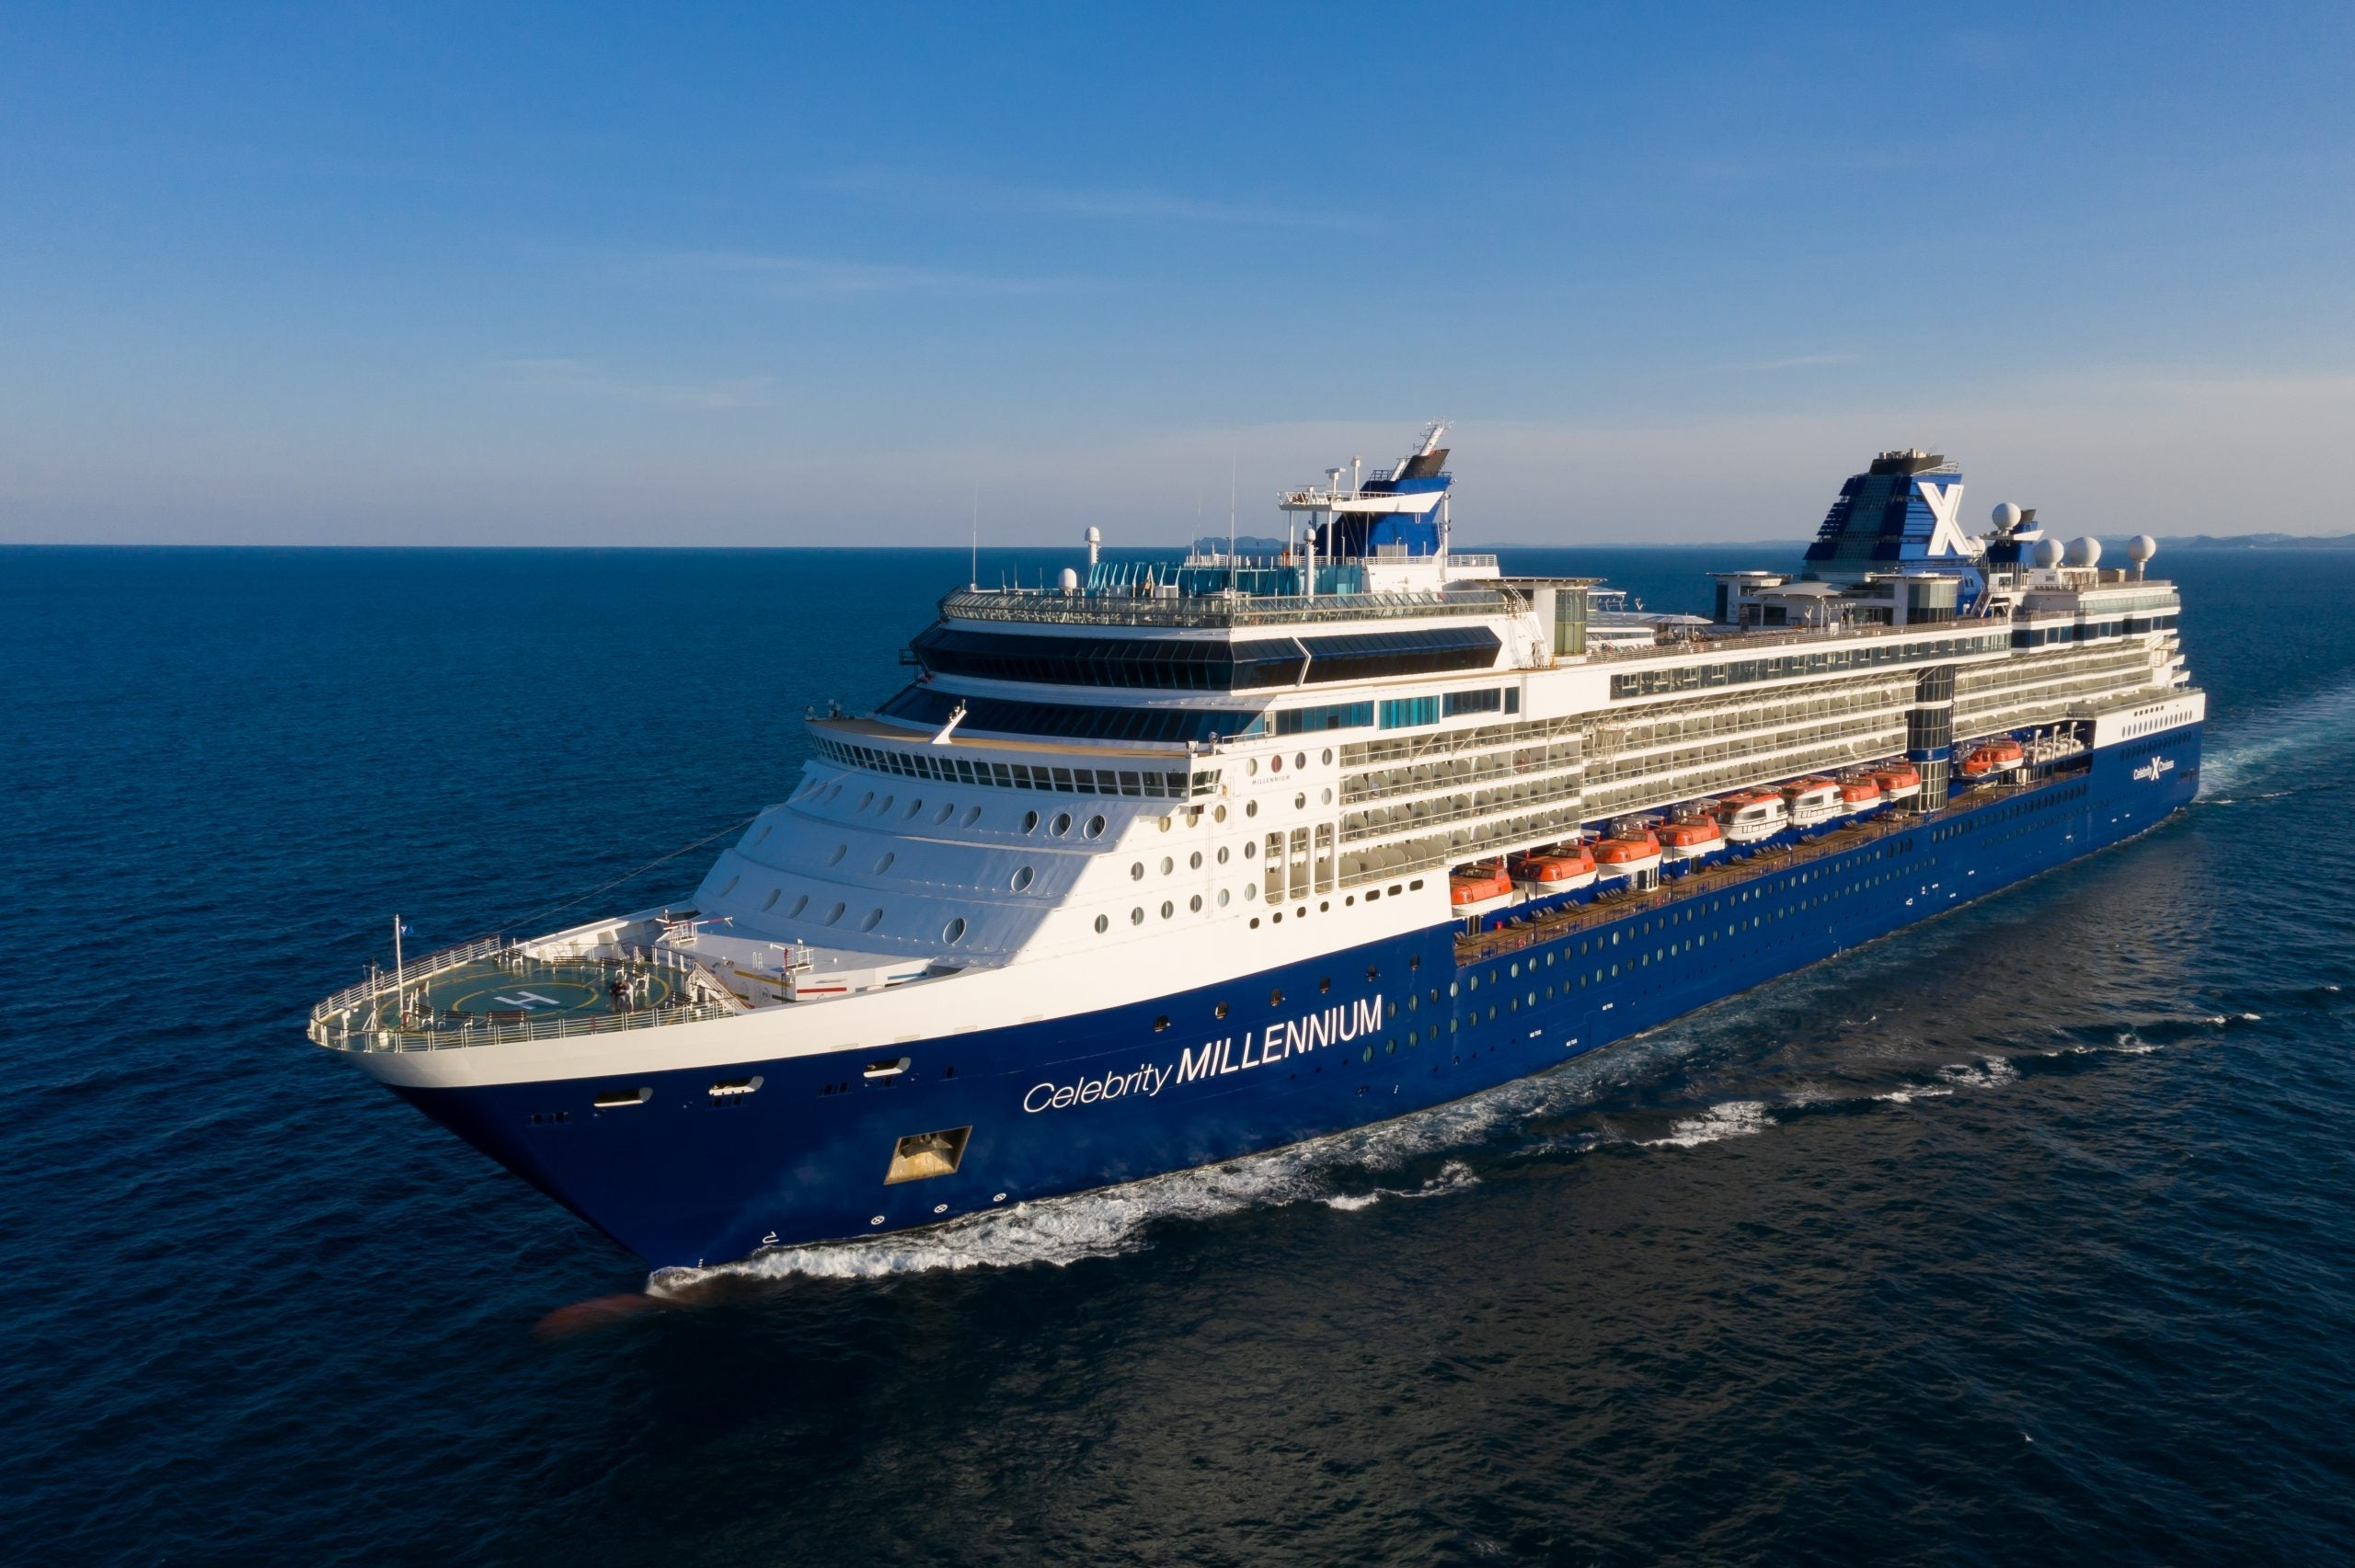 Unsung heroes: A cruise ship custodian talks a typical work day, passenger kindness and more - The Points Guy